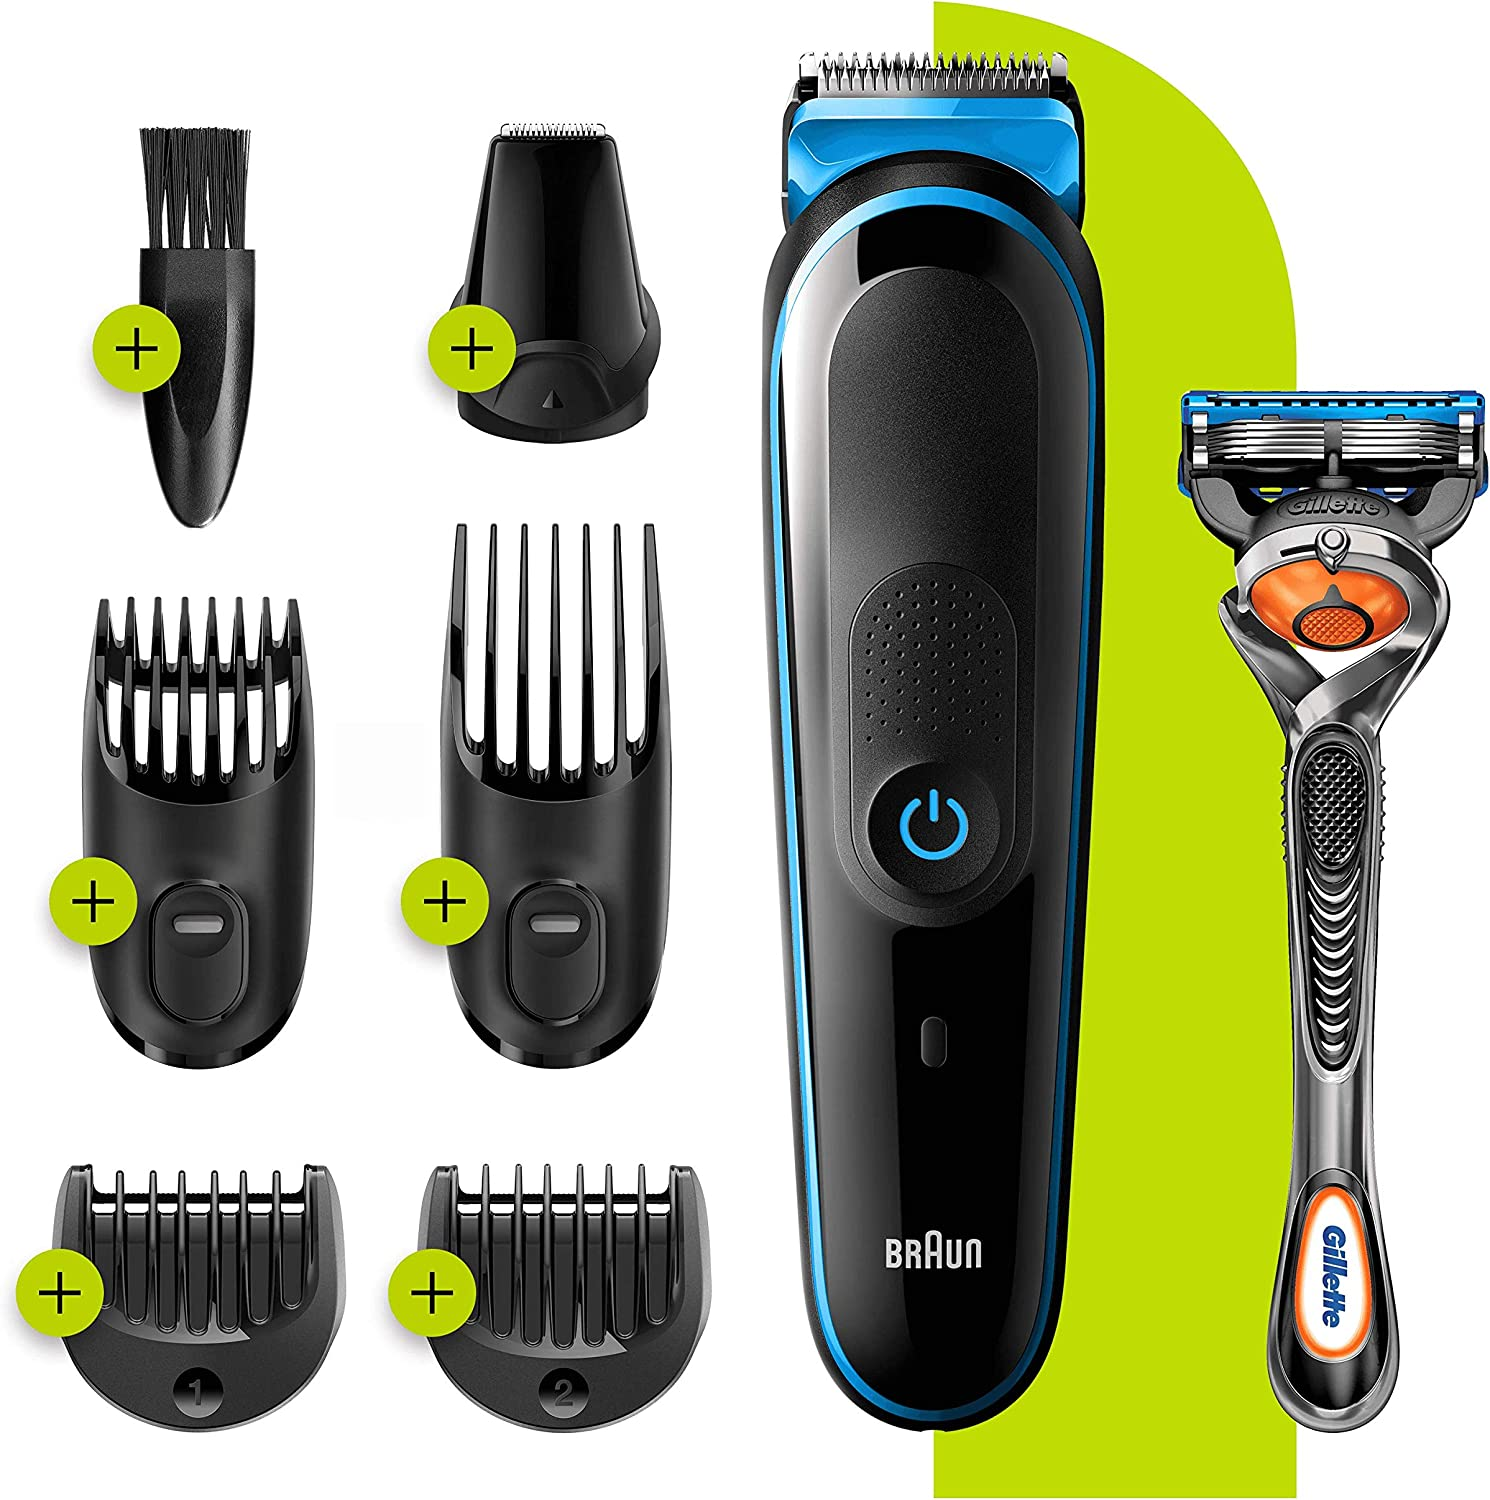 Kit de Barbero BRAUN MGK3245 7 en 1 Color Negro: Amazon.es: Salud y cuidado personal